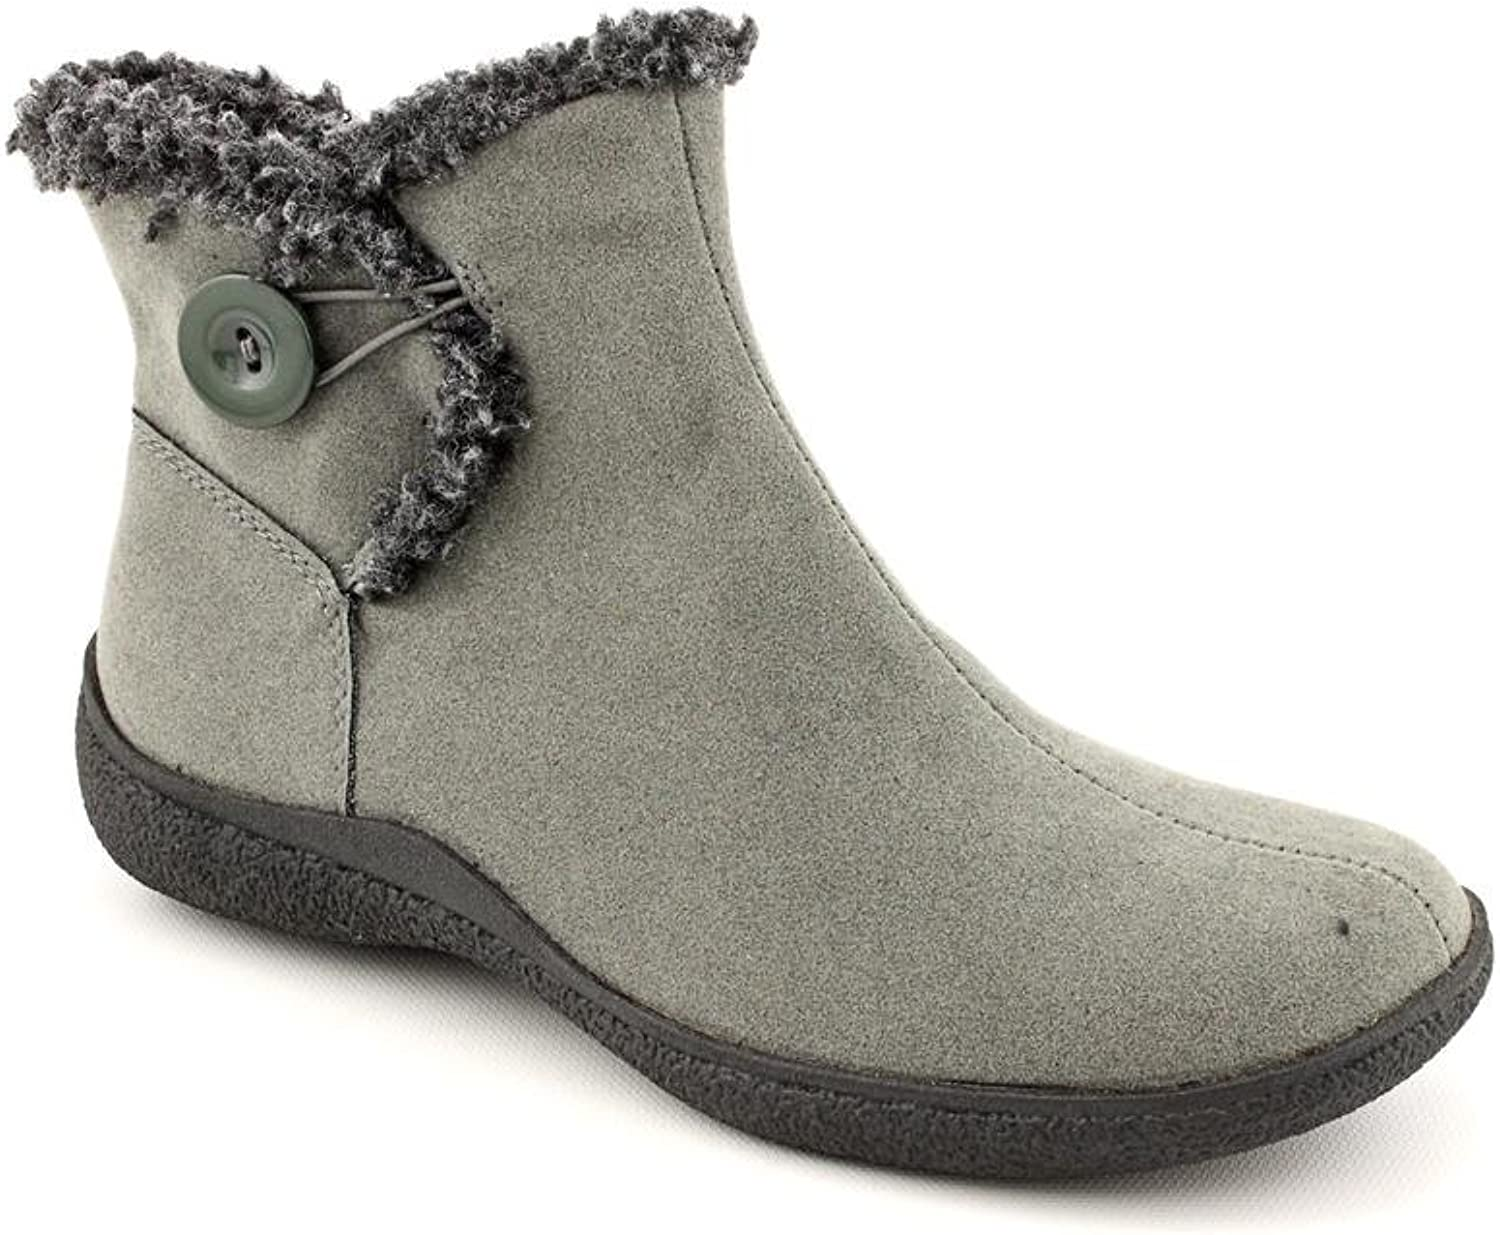 Karen Scott Women's Grady Ankle High Round Toe Boot in Grey 6M